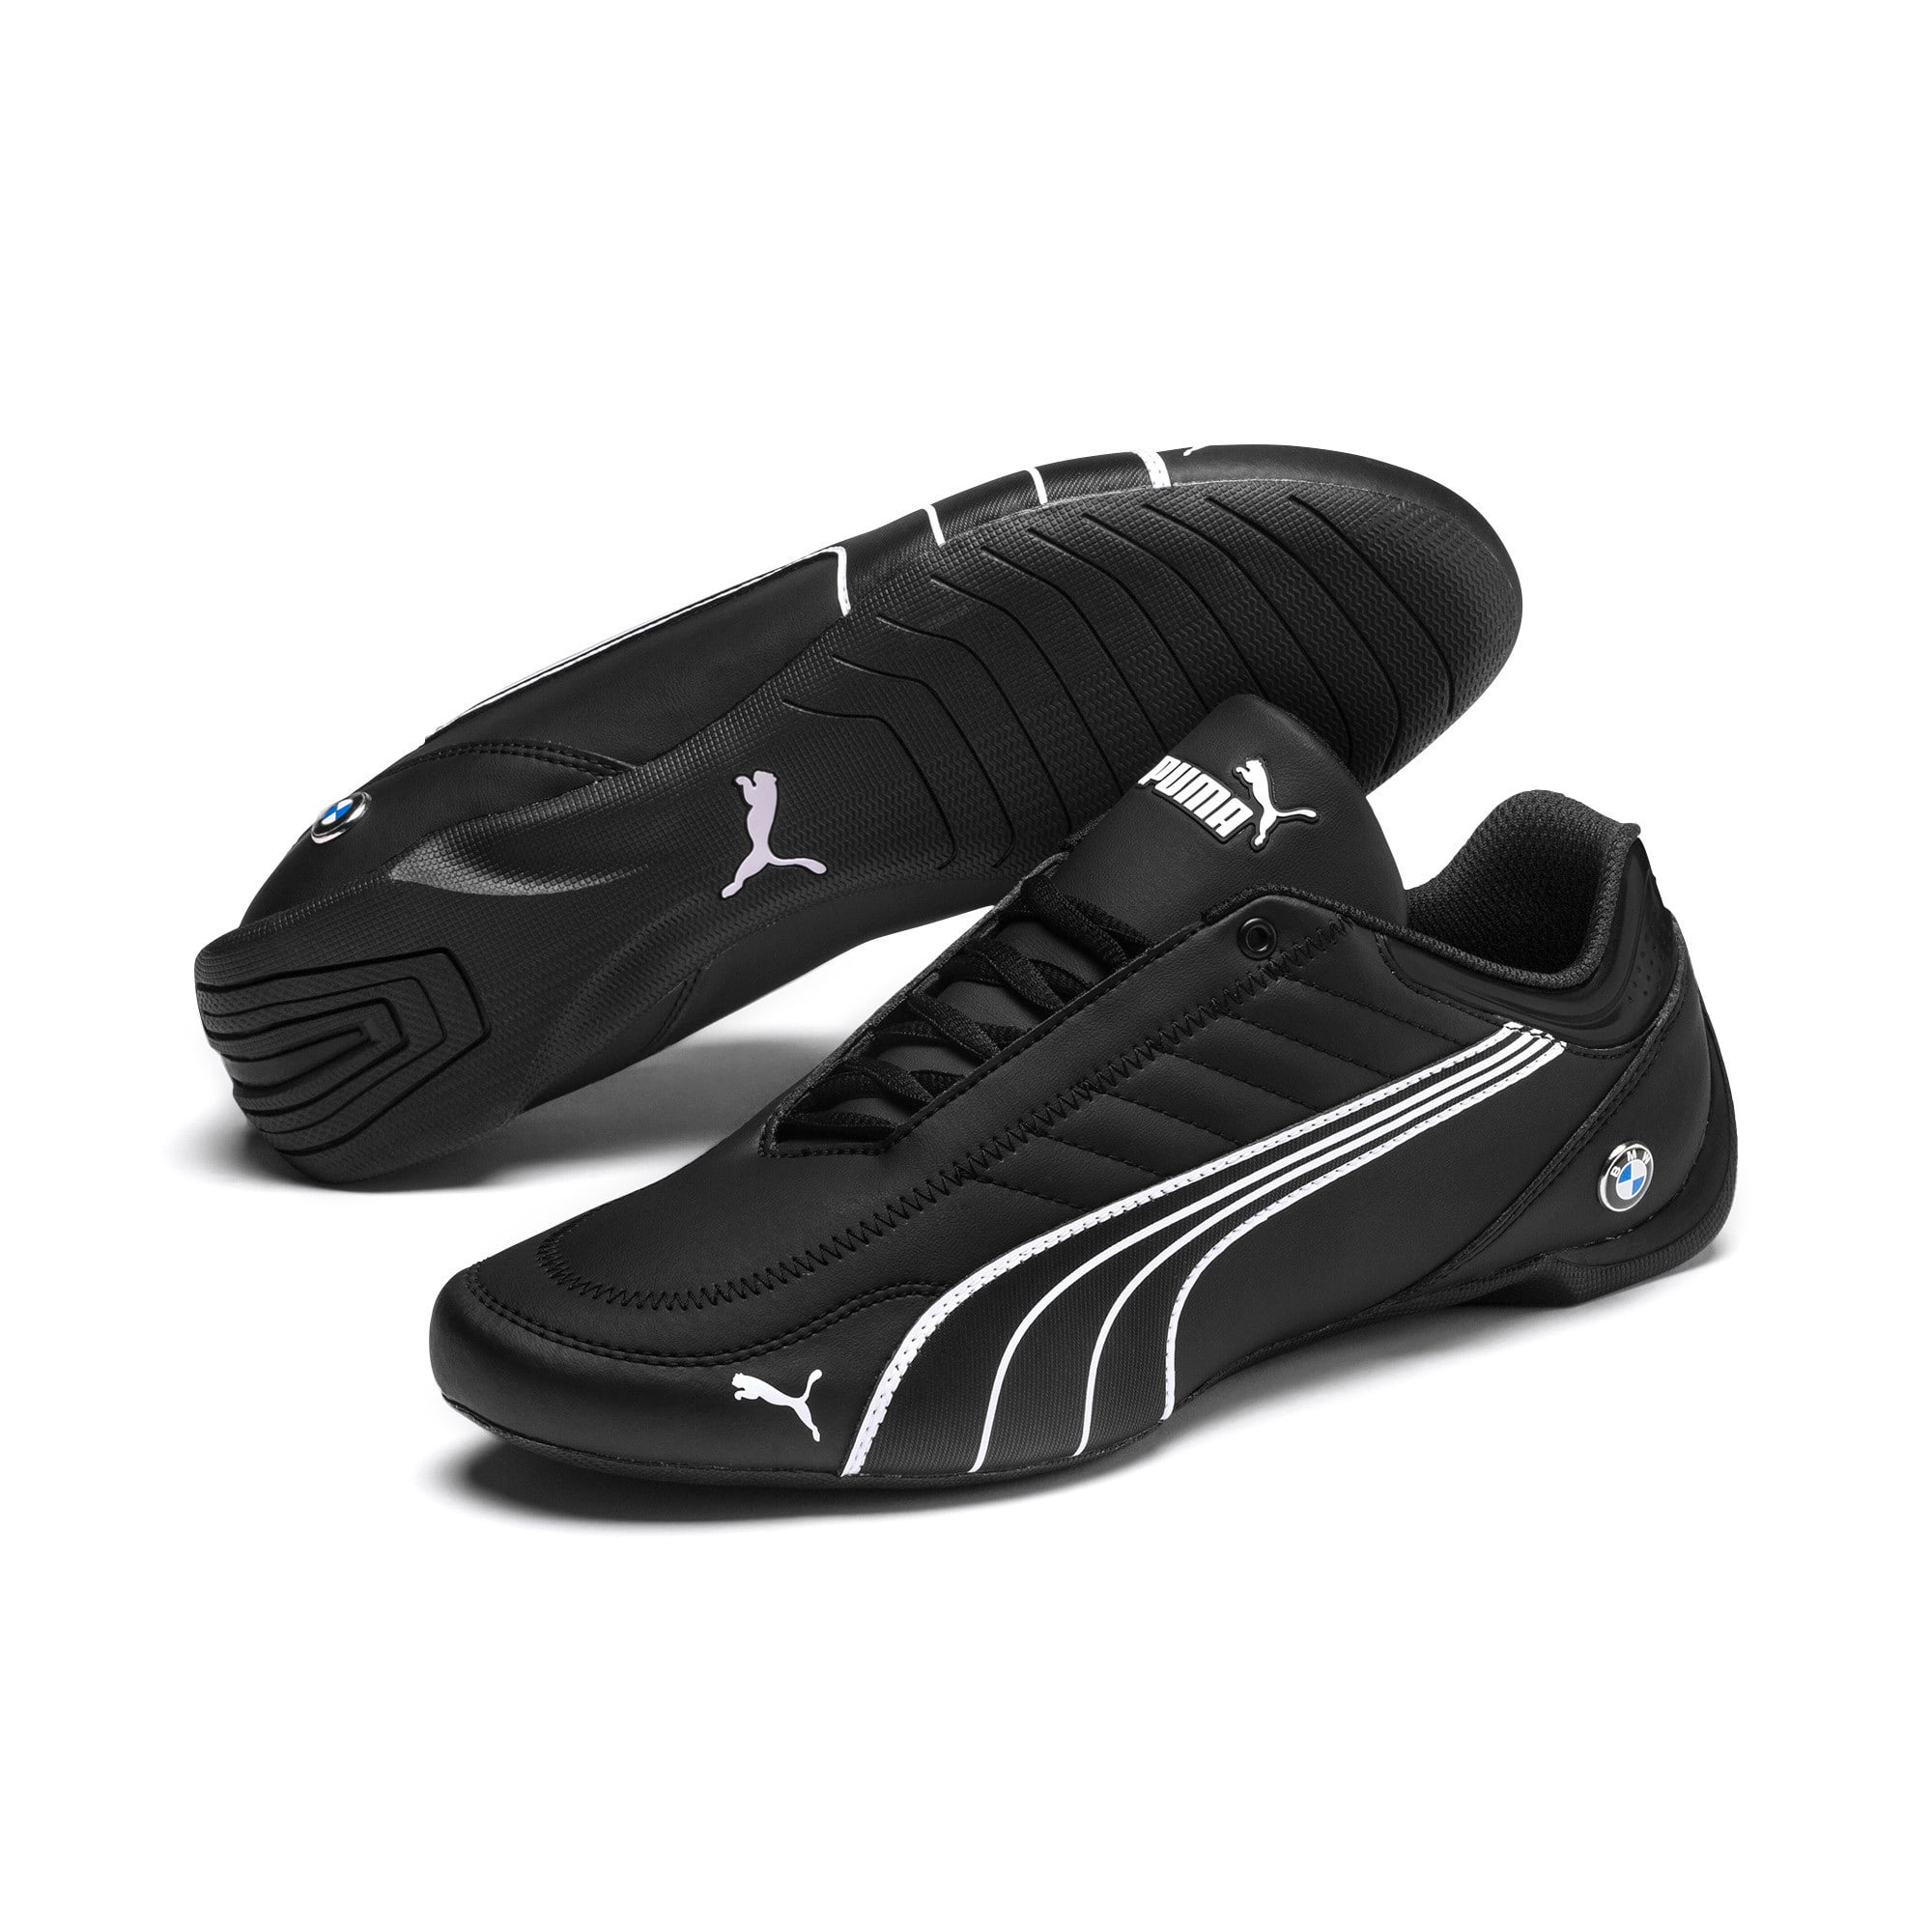 Thumbnail 4 of BMW M Motorsport Future Kart Cat Trainers, Puma Black-Puma White, medium-IND